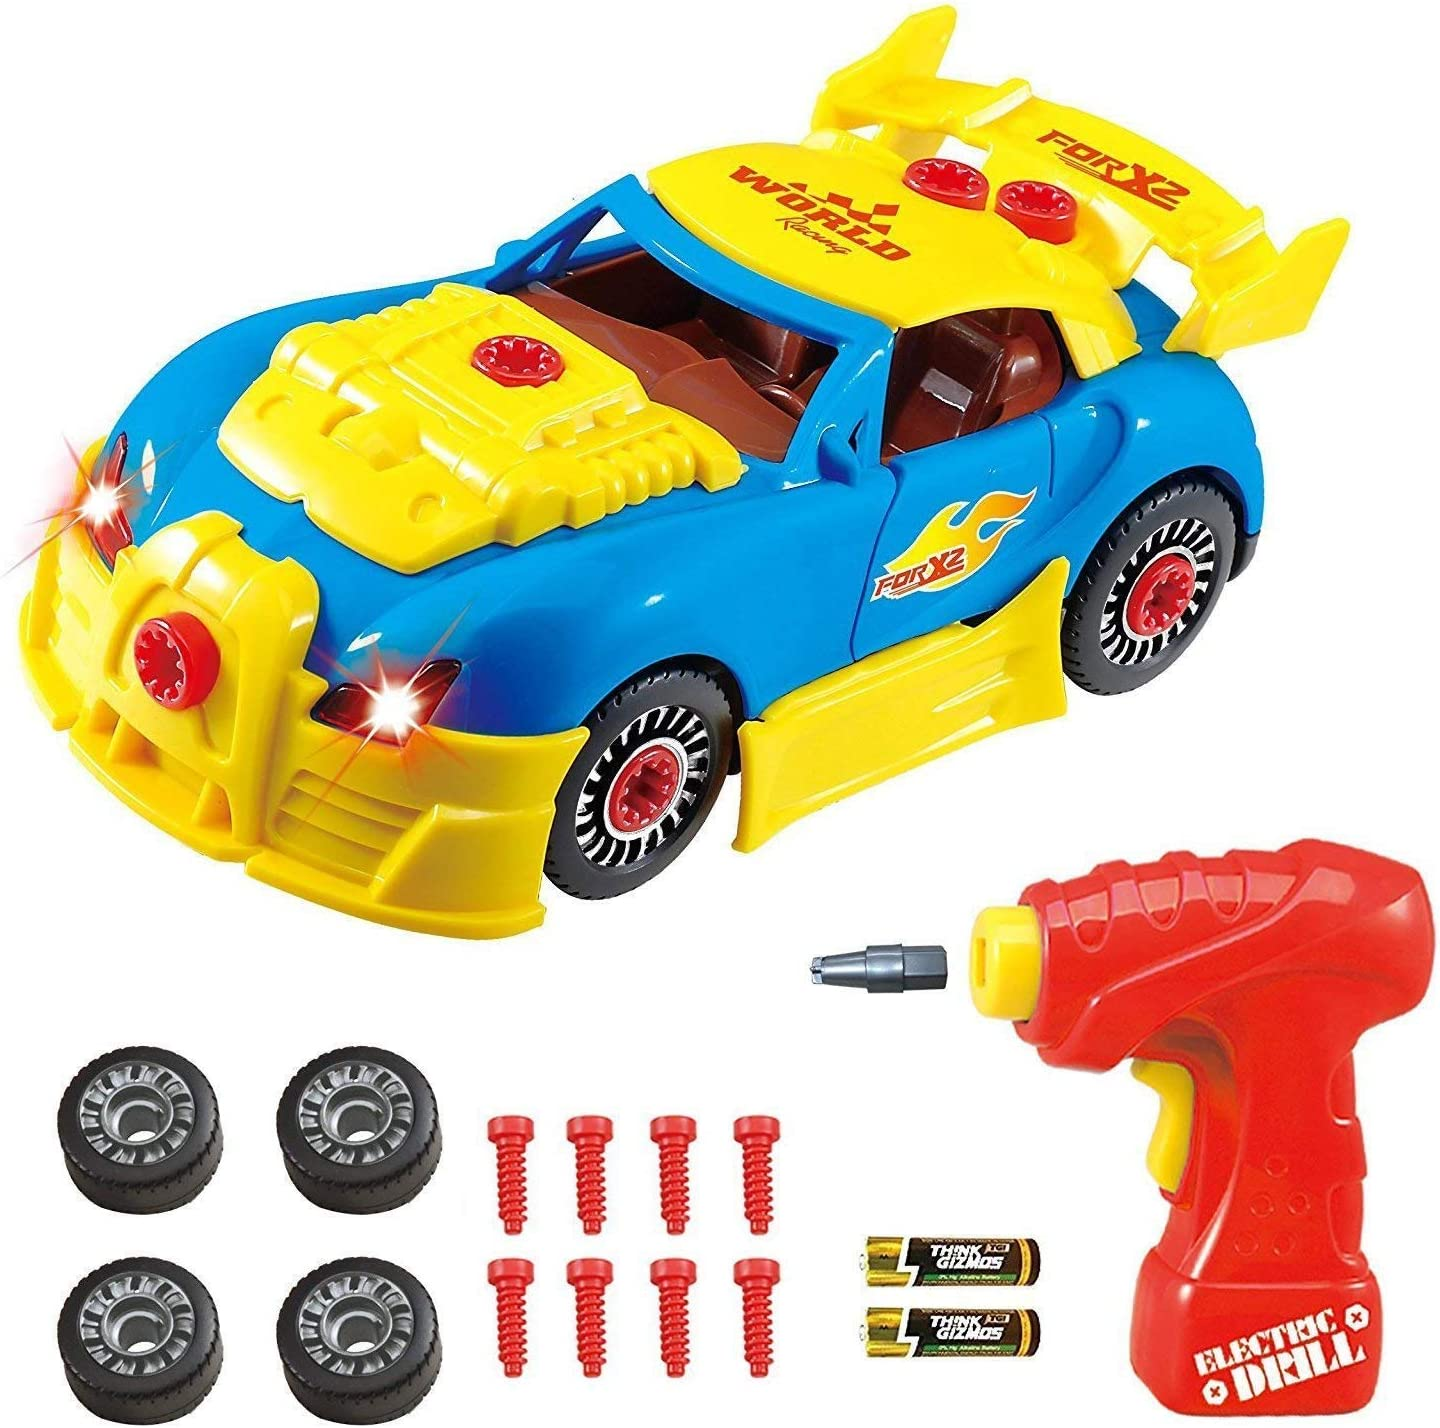 Construction Toy Kit